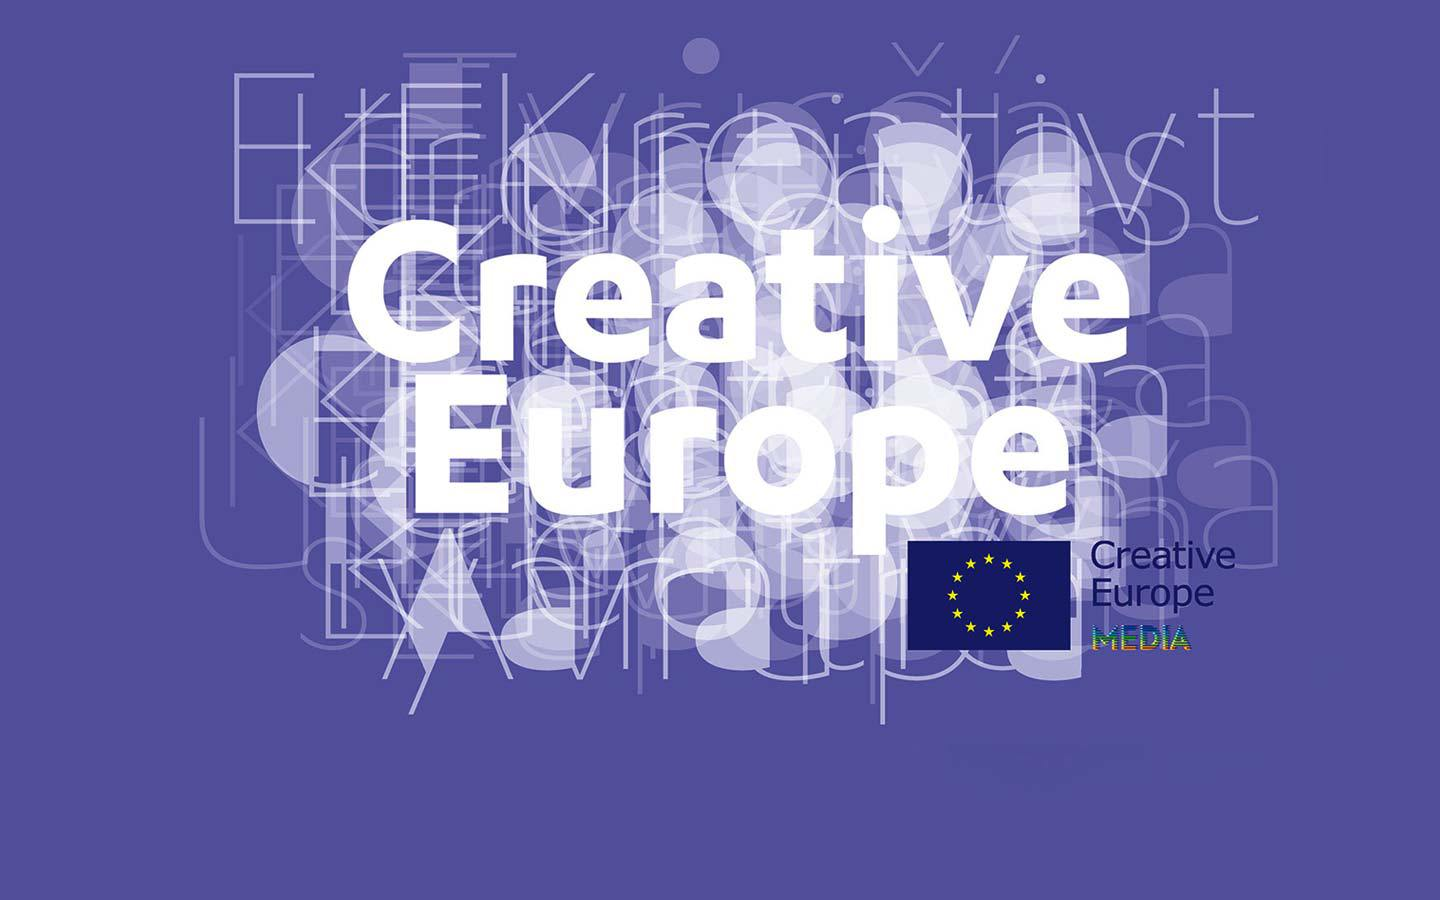 Europa Creativa MEDIA, gli appuntamenti